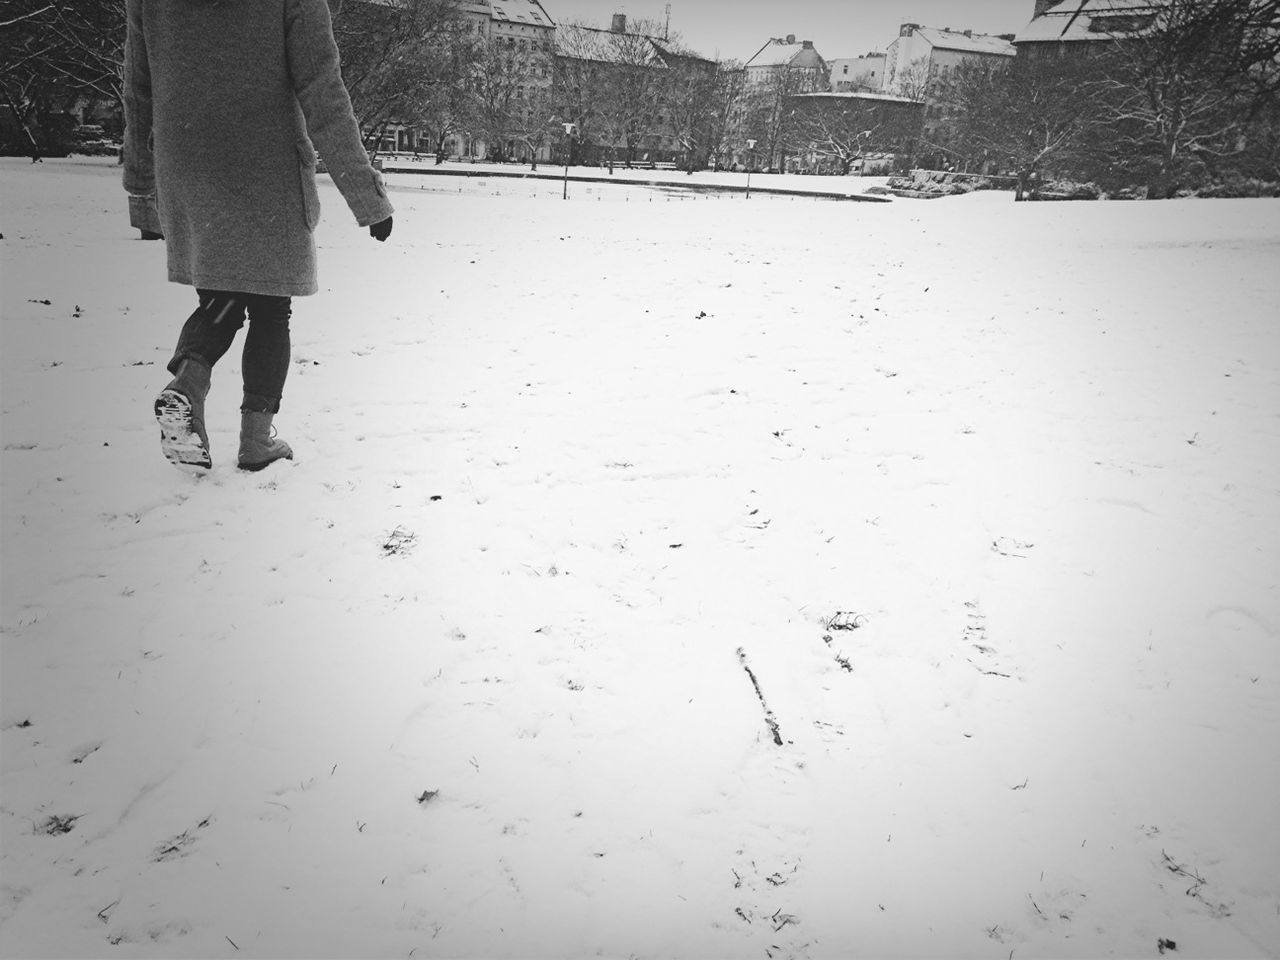 A young person walks alone in the snow